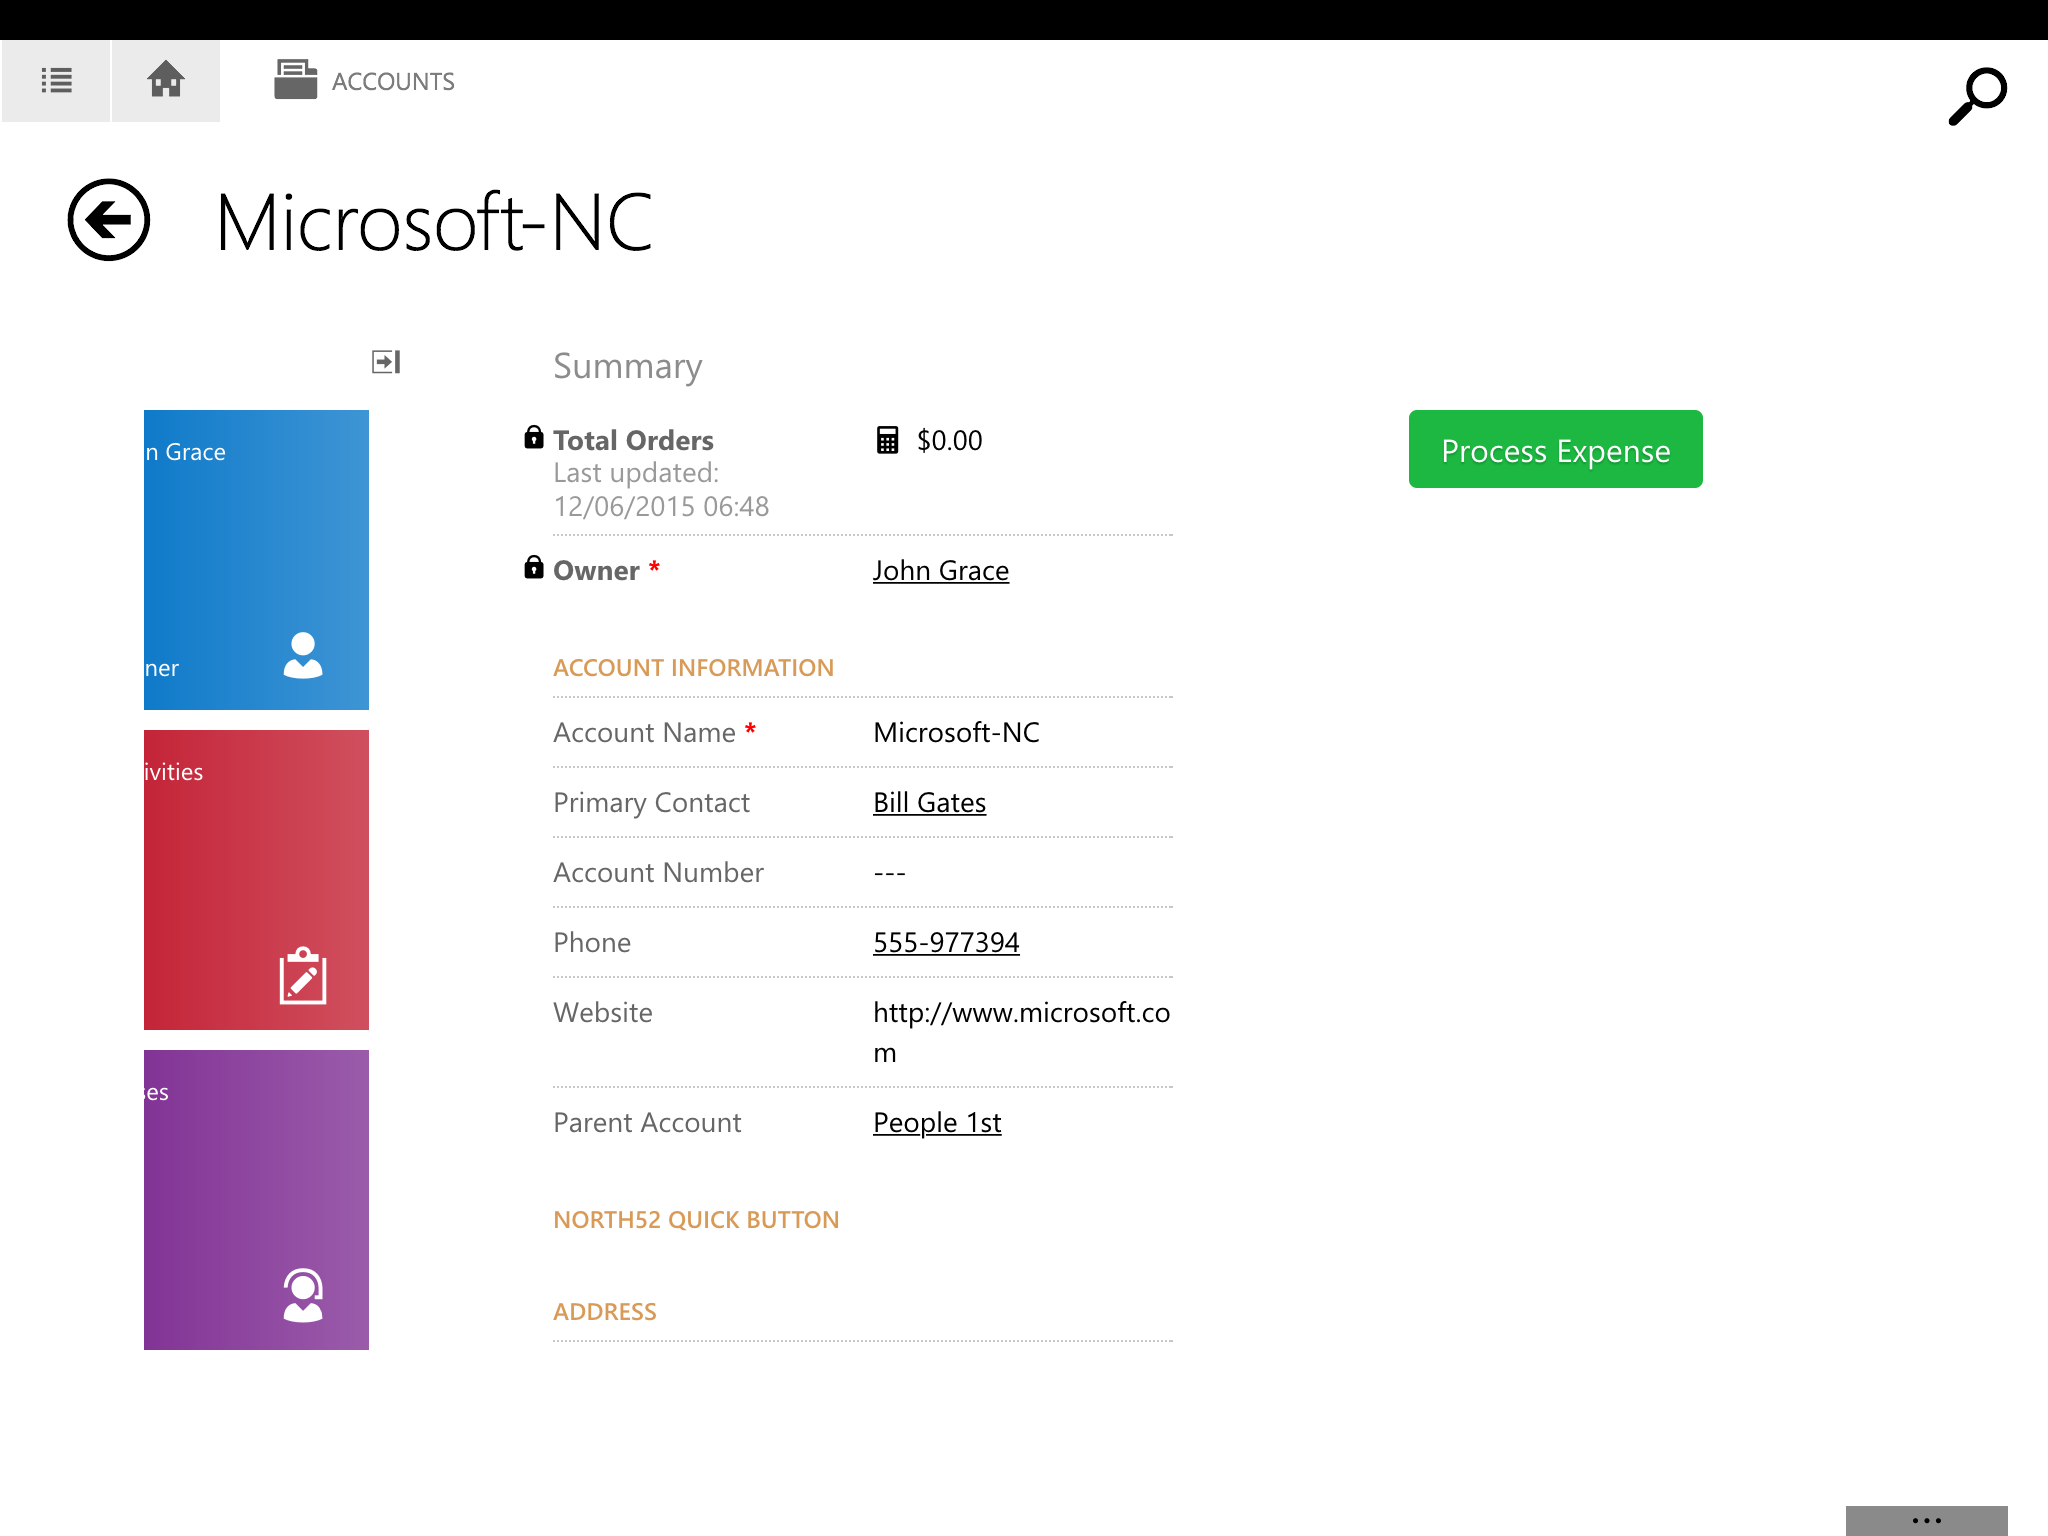 KA-01953-dynamics-crm-365-North52-App-Quick-Button · North52